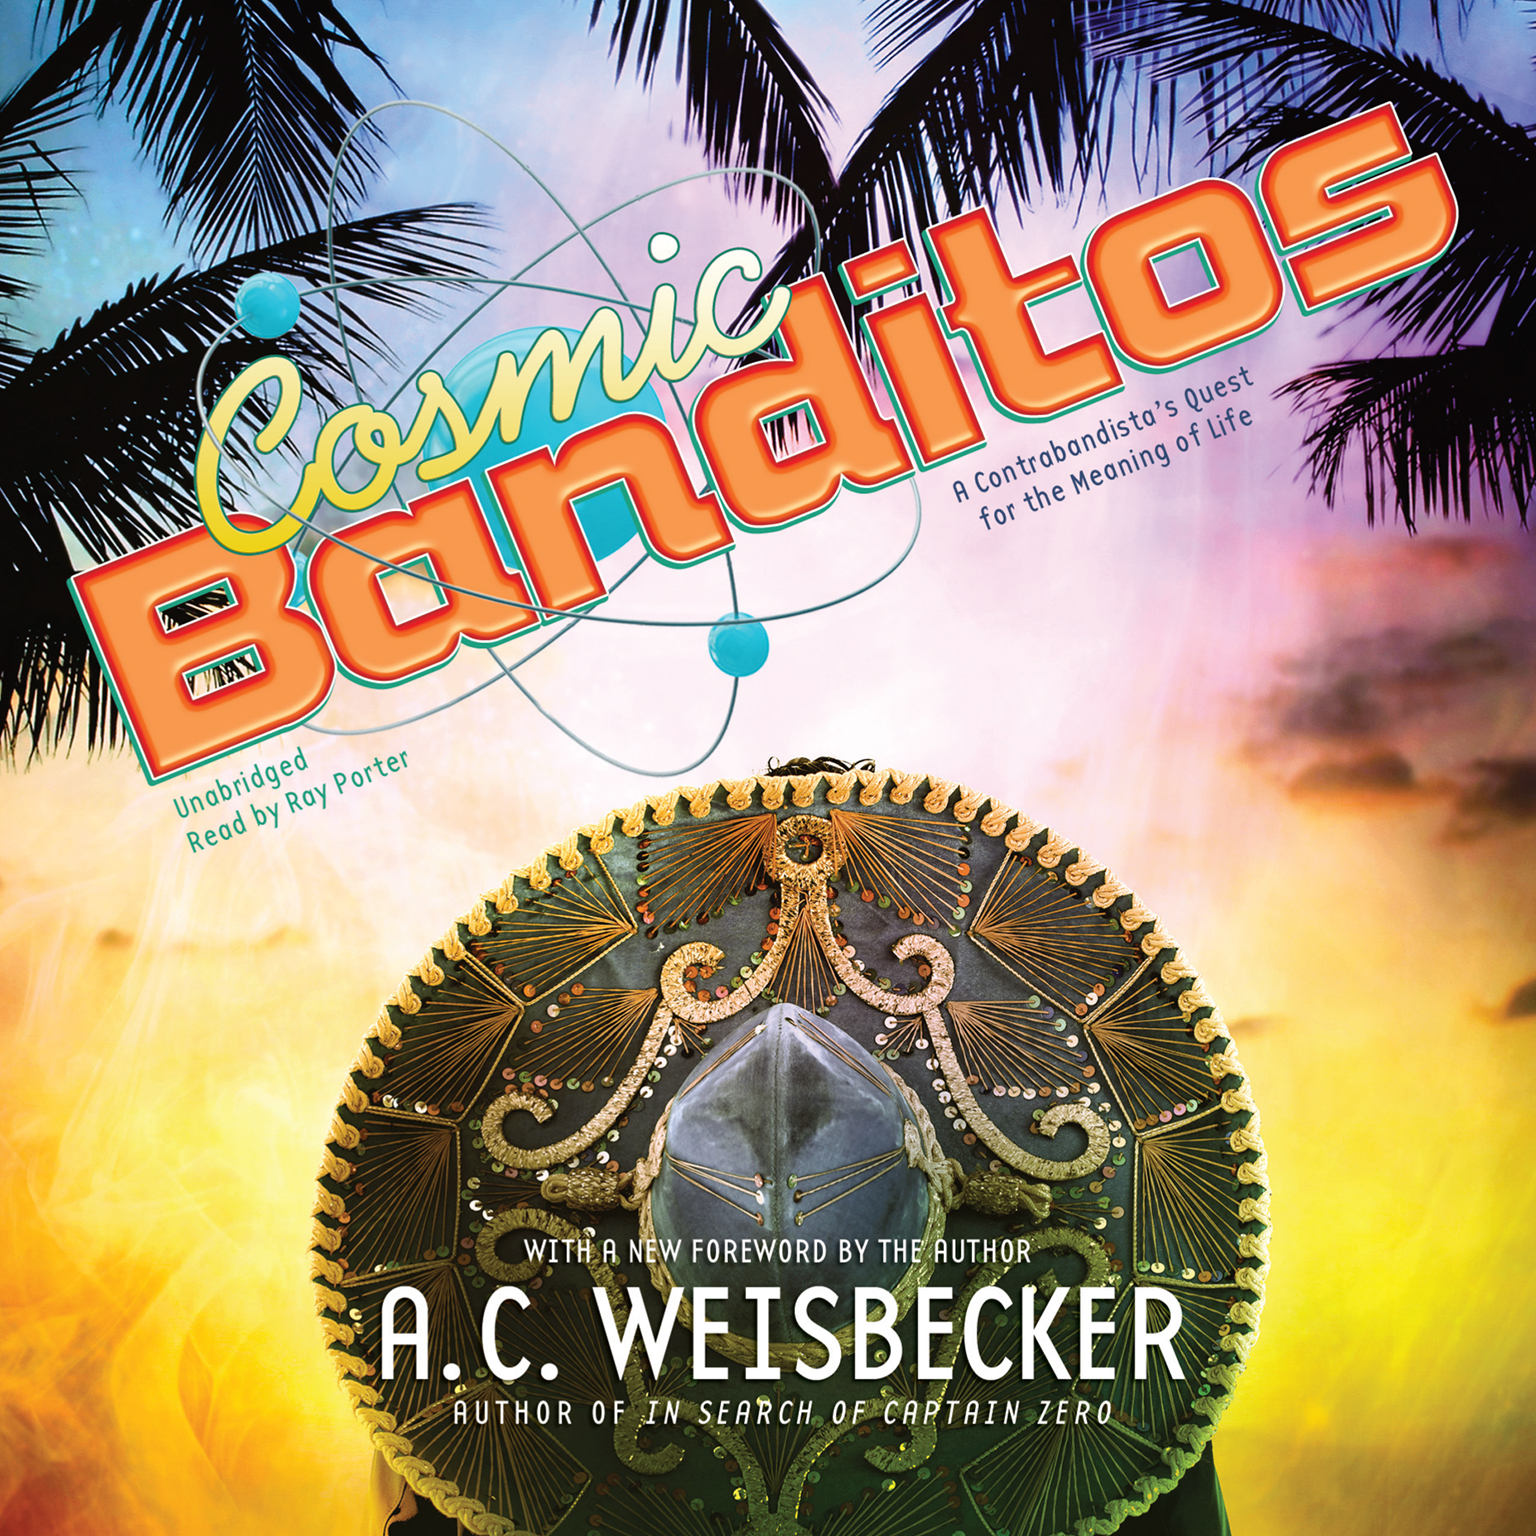 Printable Cosmic Banditos: A Contrabandista's Quest for the Meaning of Life Audiobook Cover Art